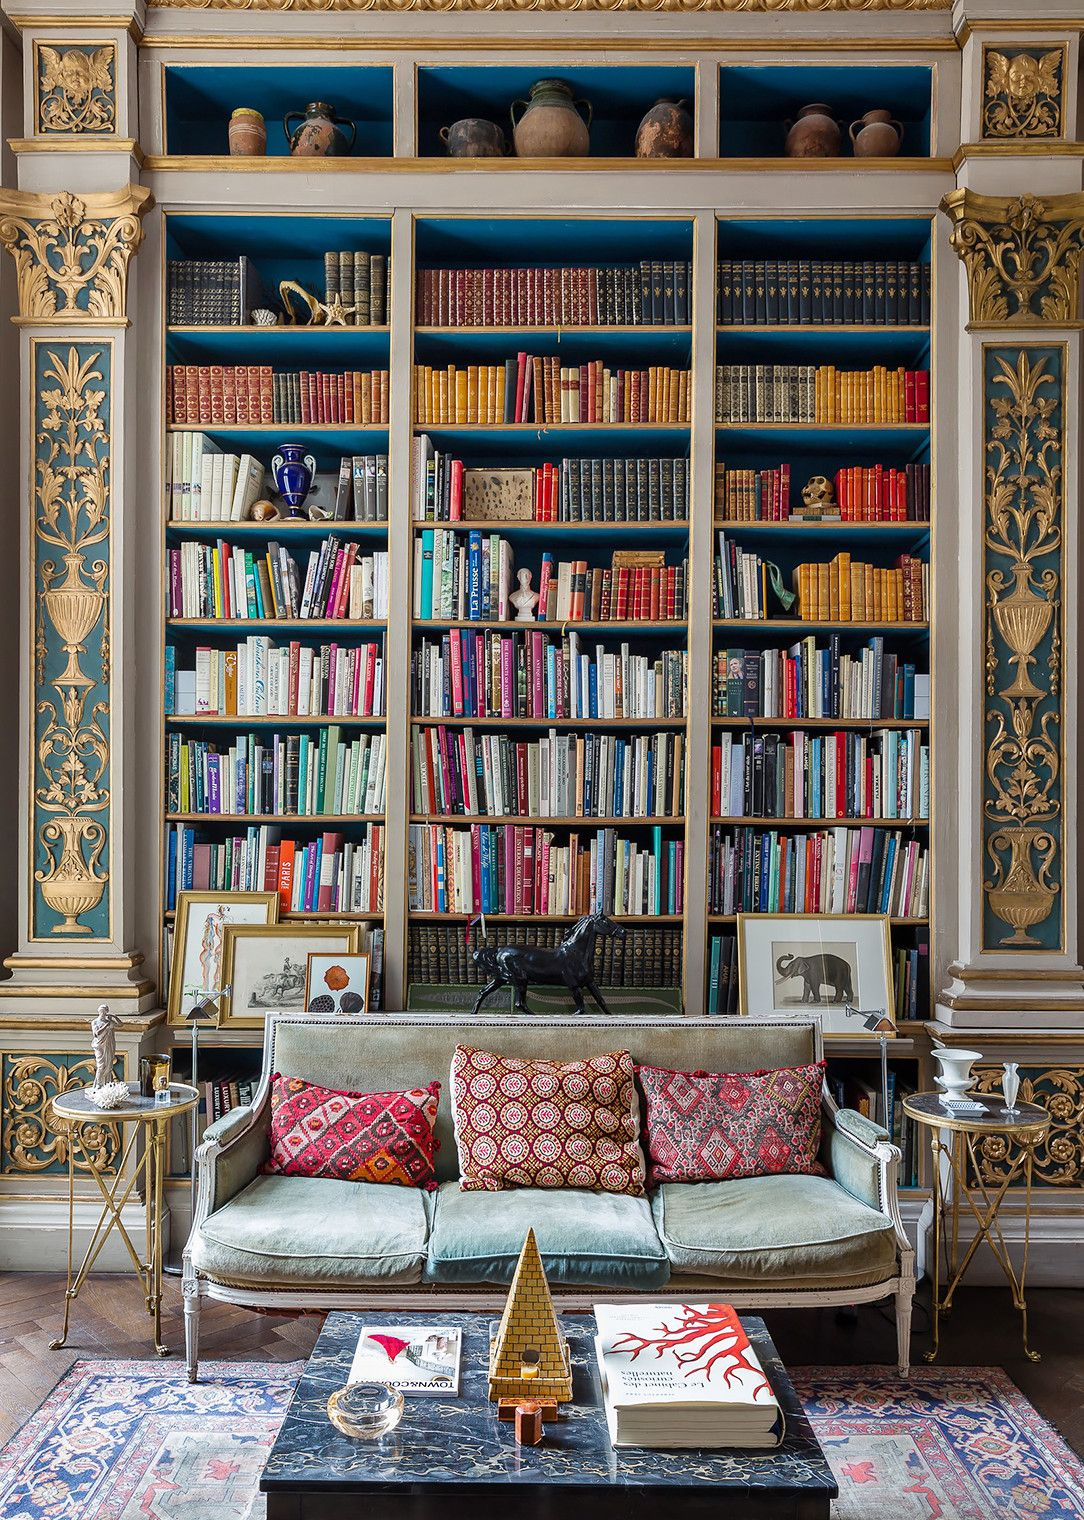 9 Insanely Chic Home Libraries That Made Our Jaws Drop To